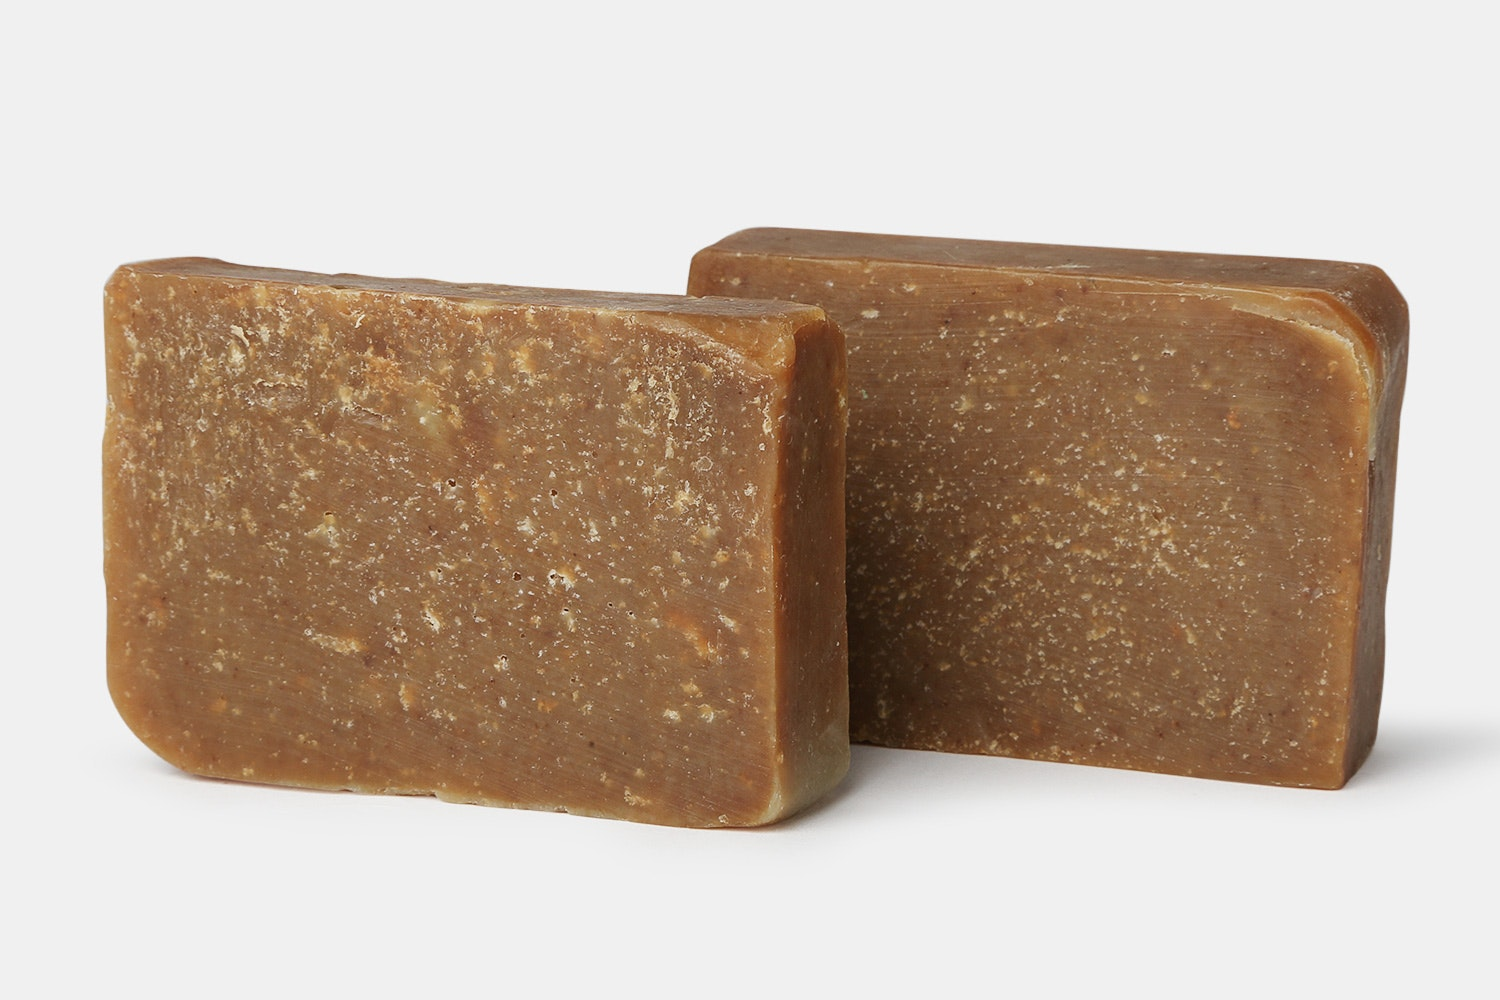 Liha Ose Gidi Handmade Black Soap (2-Pack)